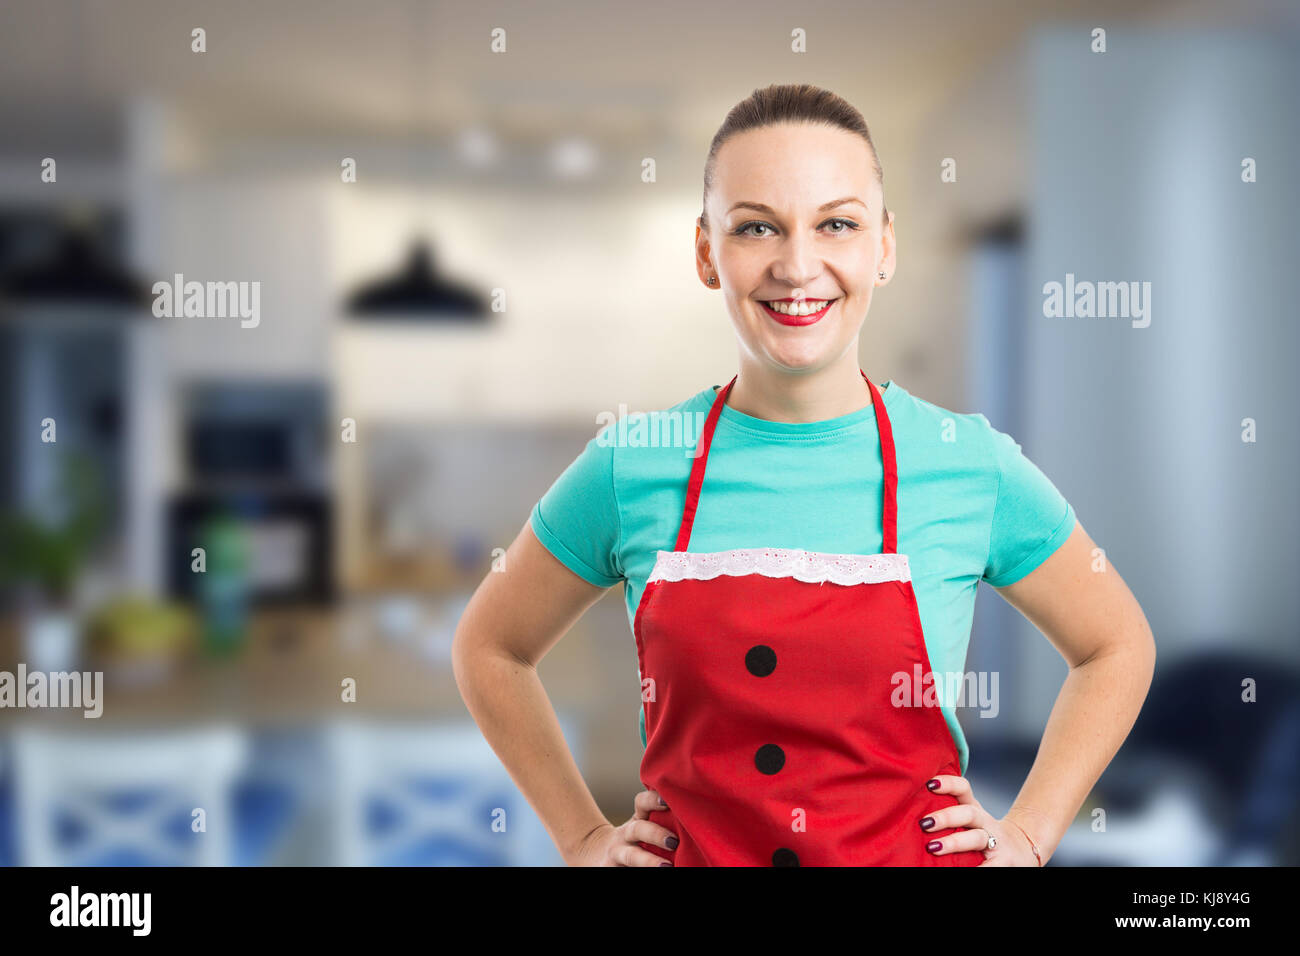 Wife or housekeeper smiling and wearing red apron on home kitchen background Stock Photo